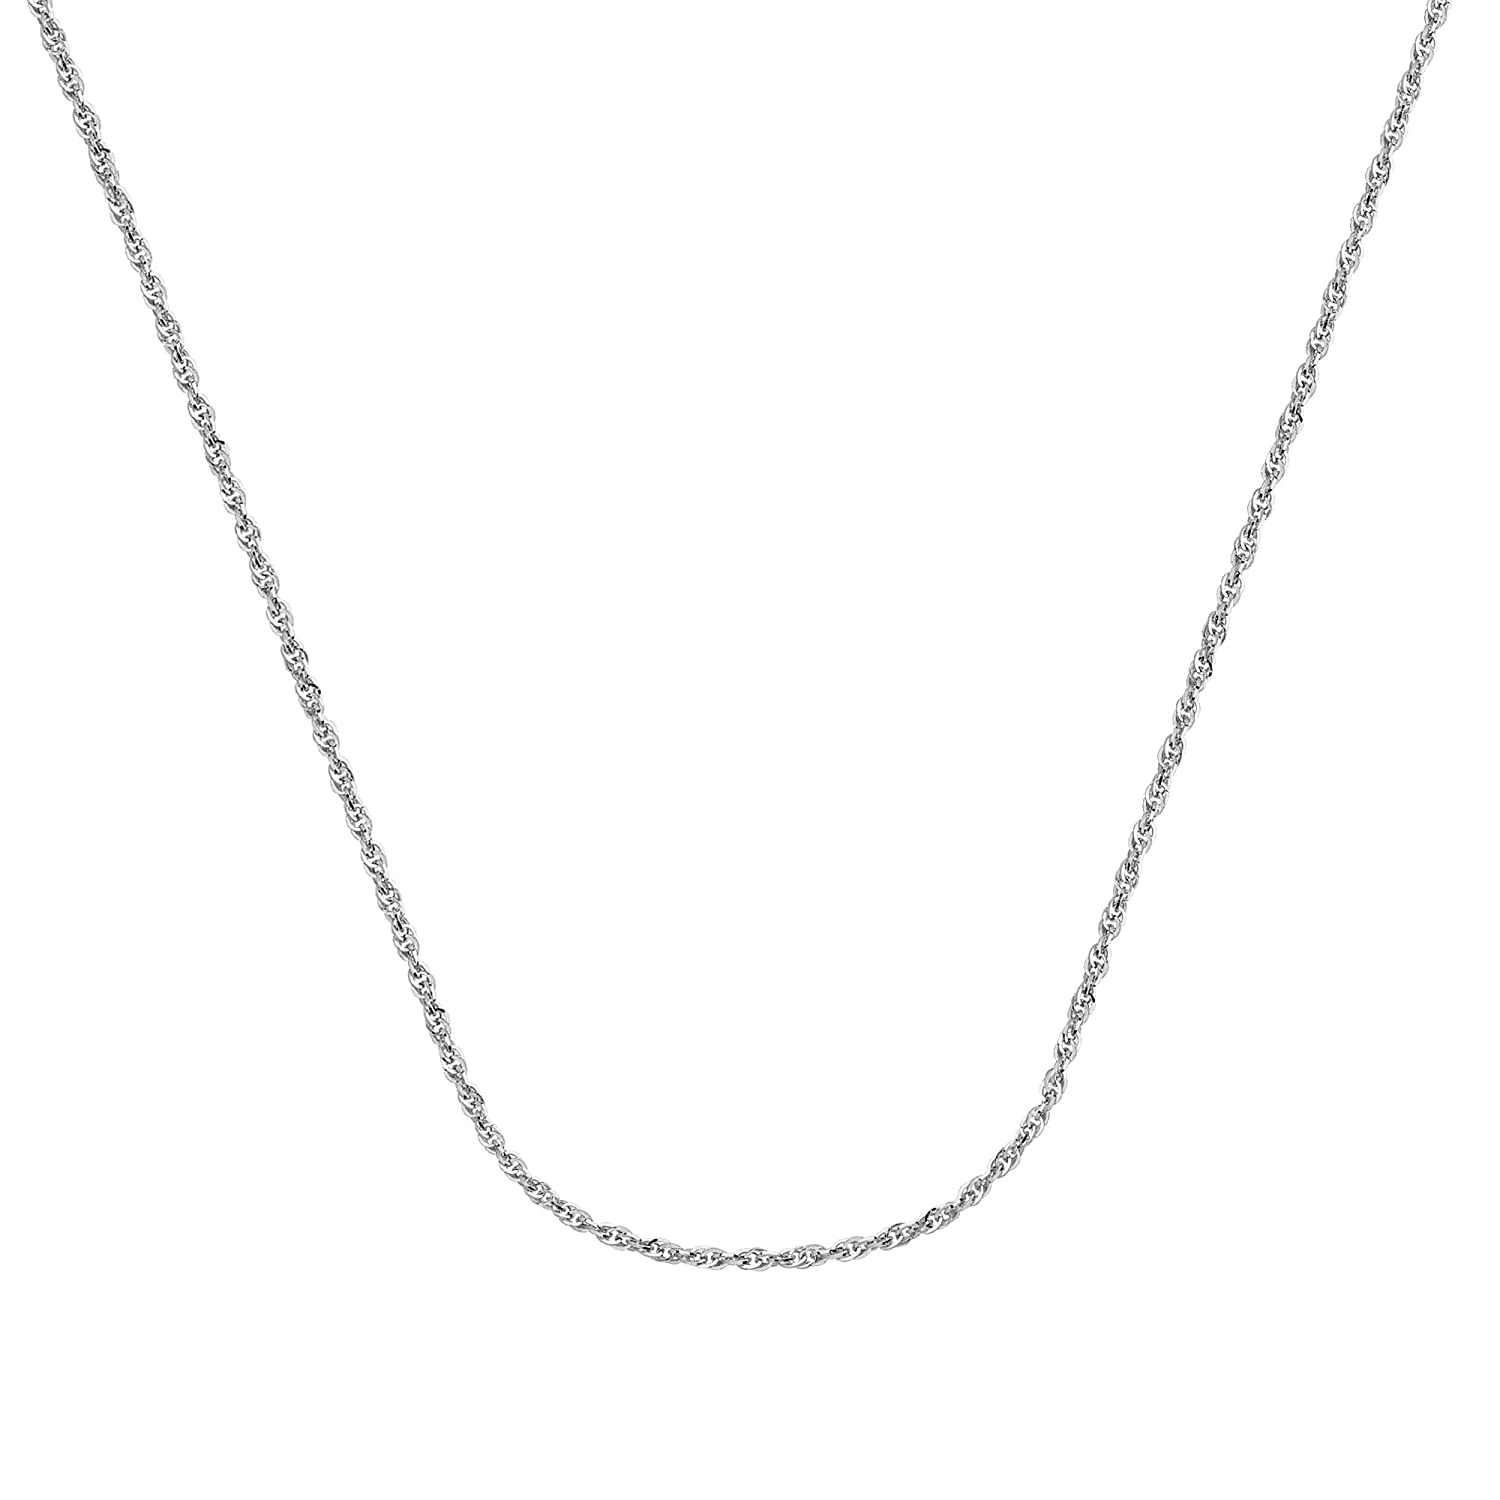 16 Inches Long Rope Chain 14Kt Gold Hollow Rope Chain With Lobster Lock